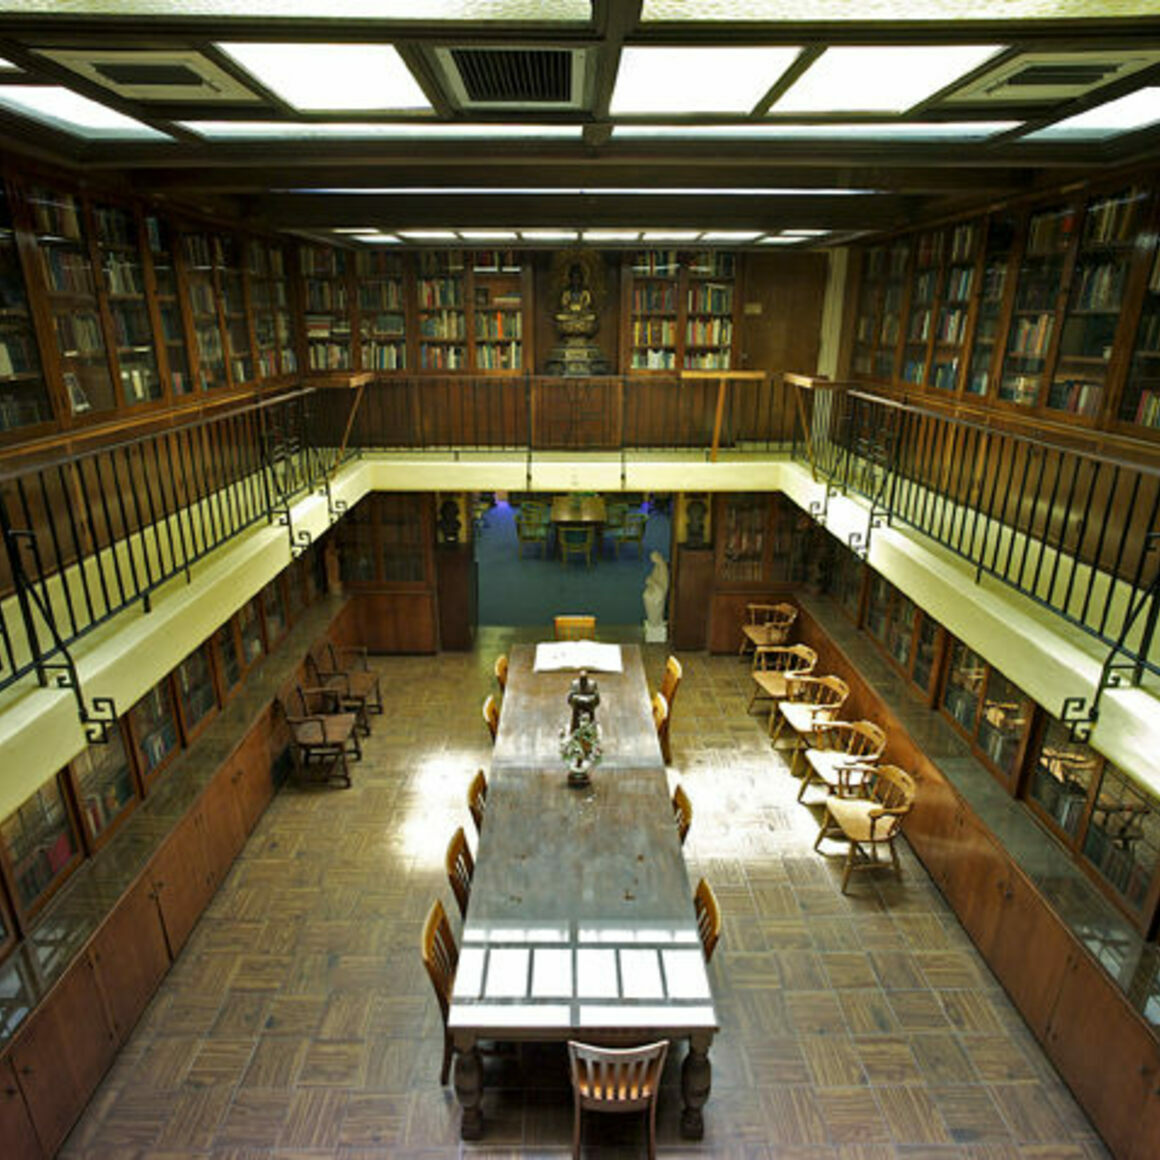 The Library at PRS.